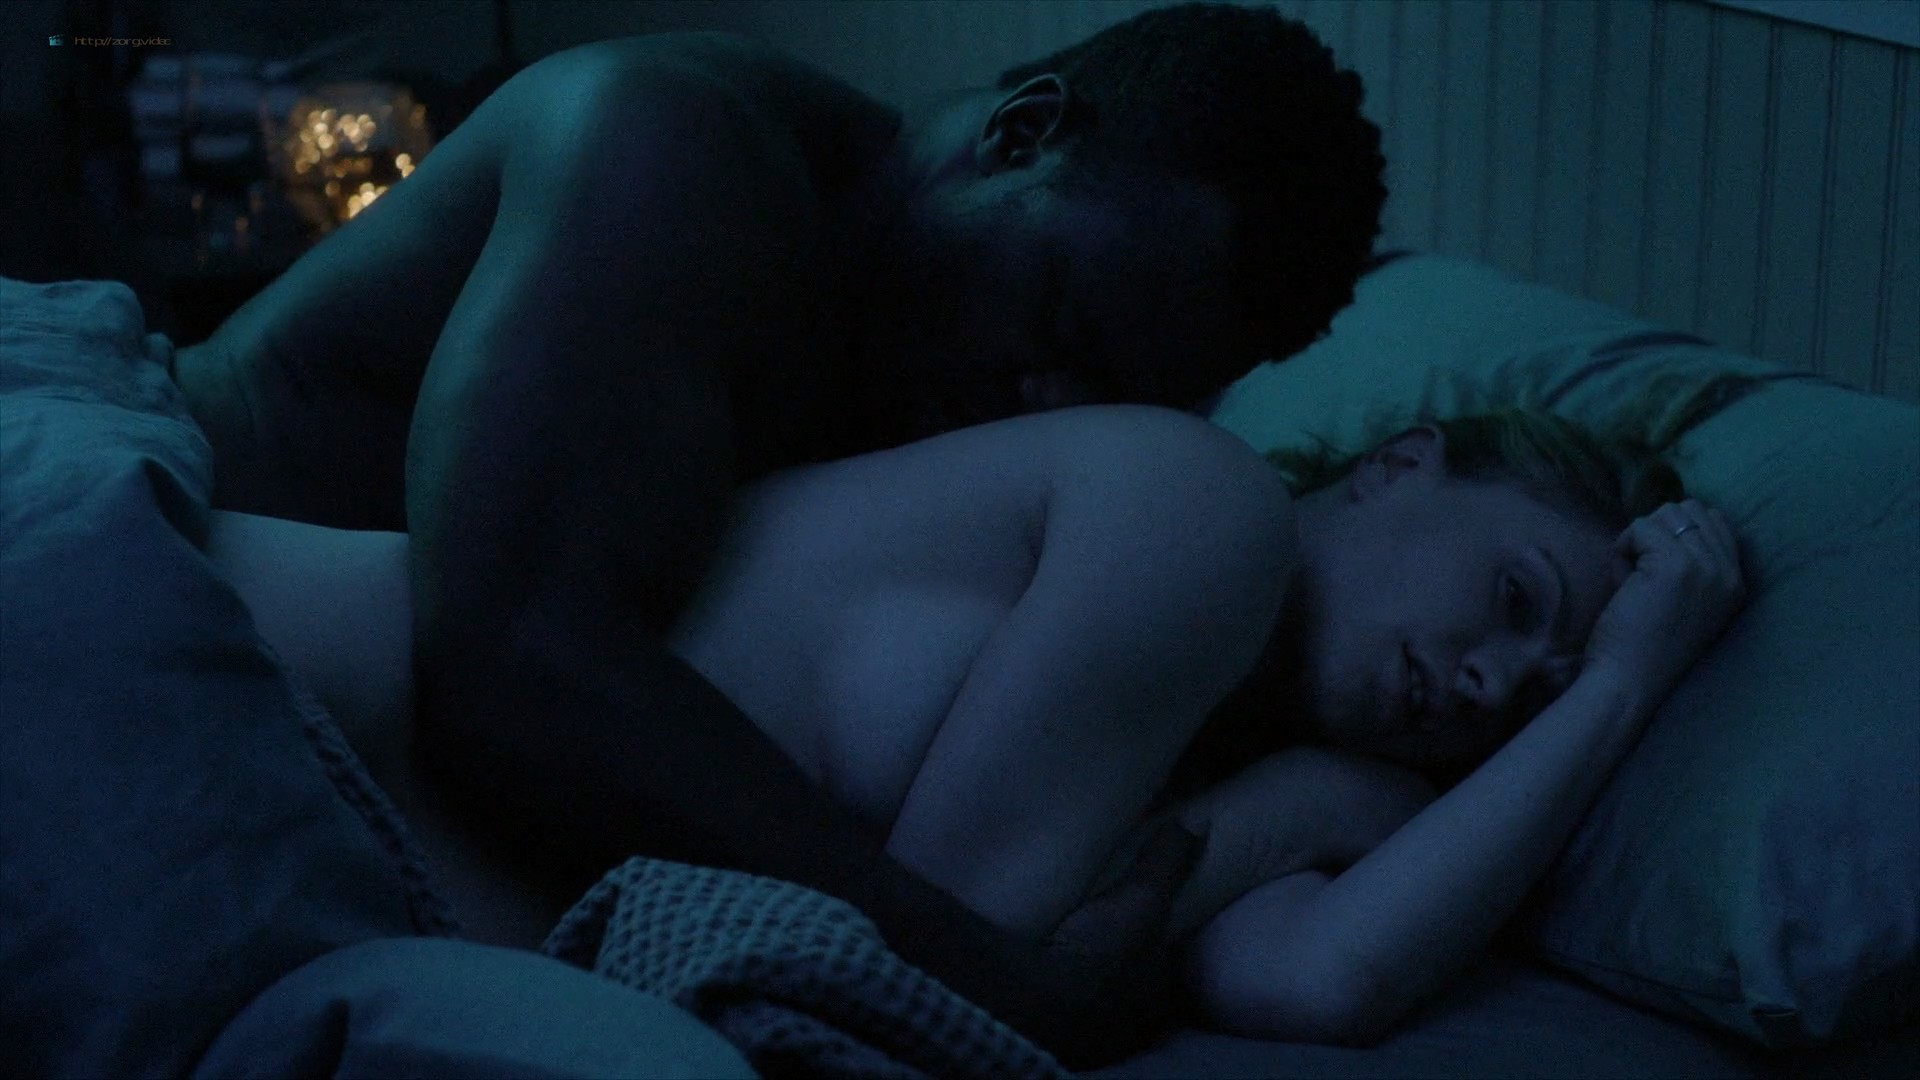 Anna Paquin nude hot sex Maura Tierney nude too- The Affair (2019) s5e1 HD 1080p WEB (7)